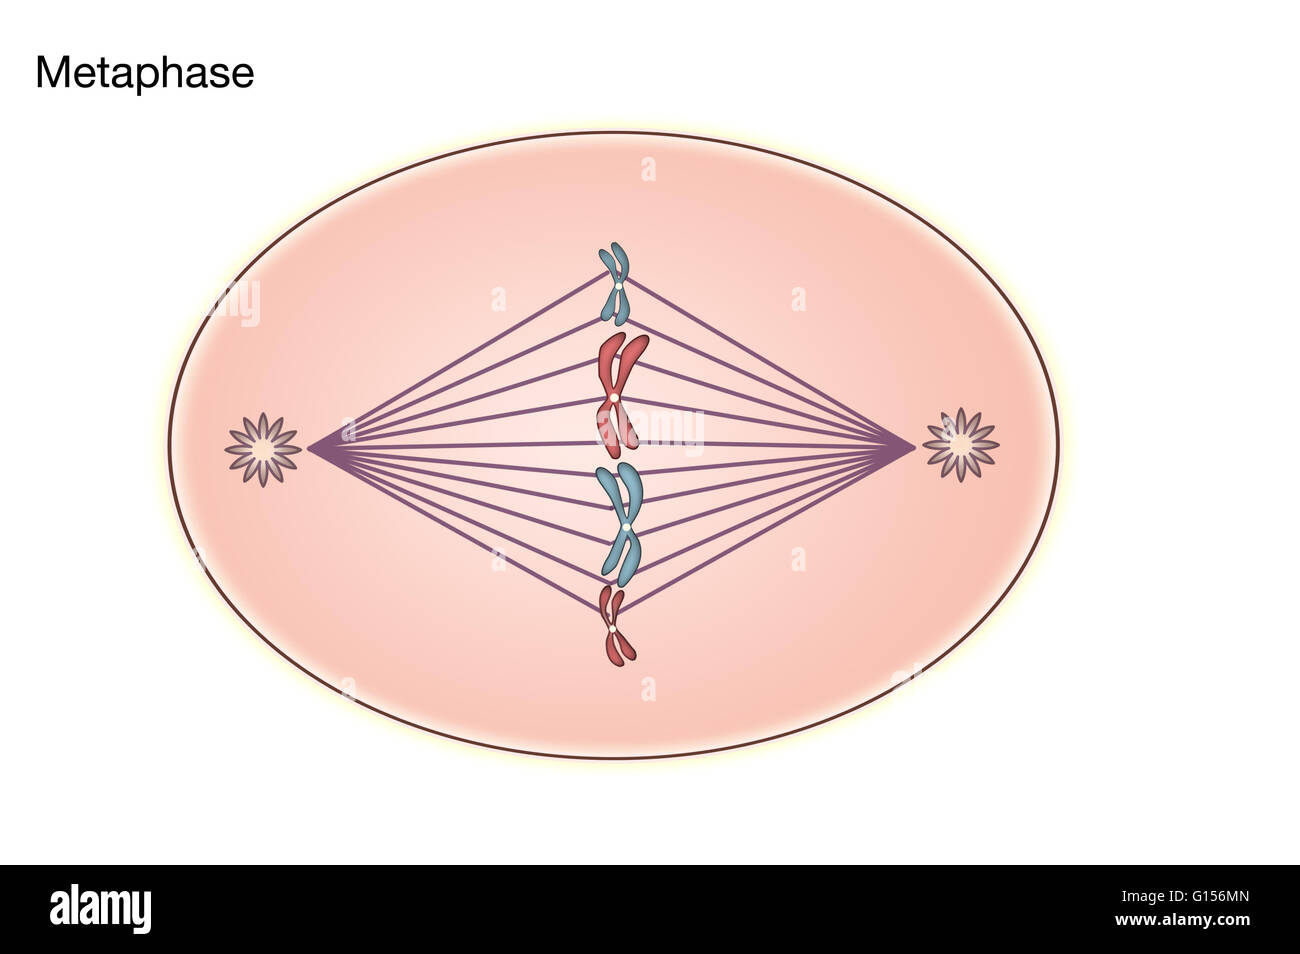 Diagram of Metaphase of Mitosis in an animal cell Stock Photo     Diagram of Metaphase of Mitosis in an animal cell